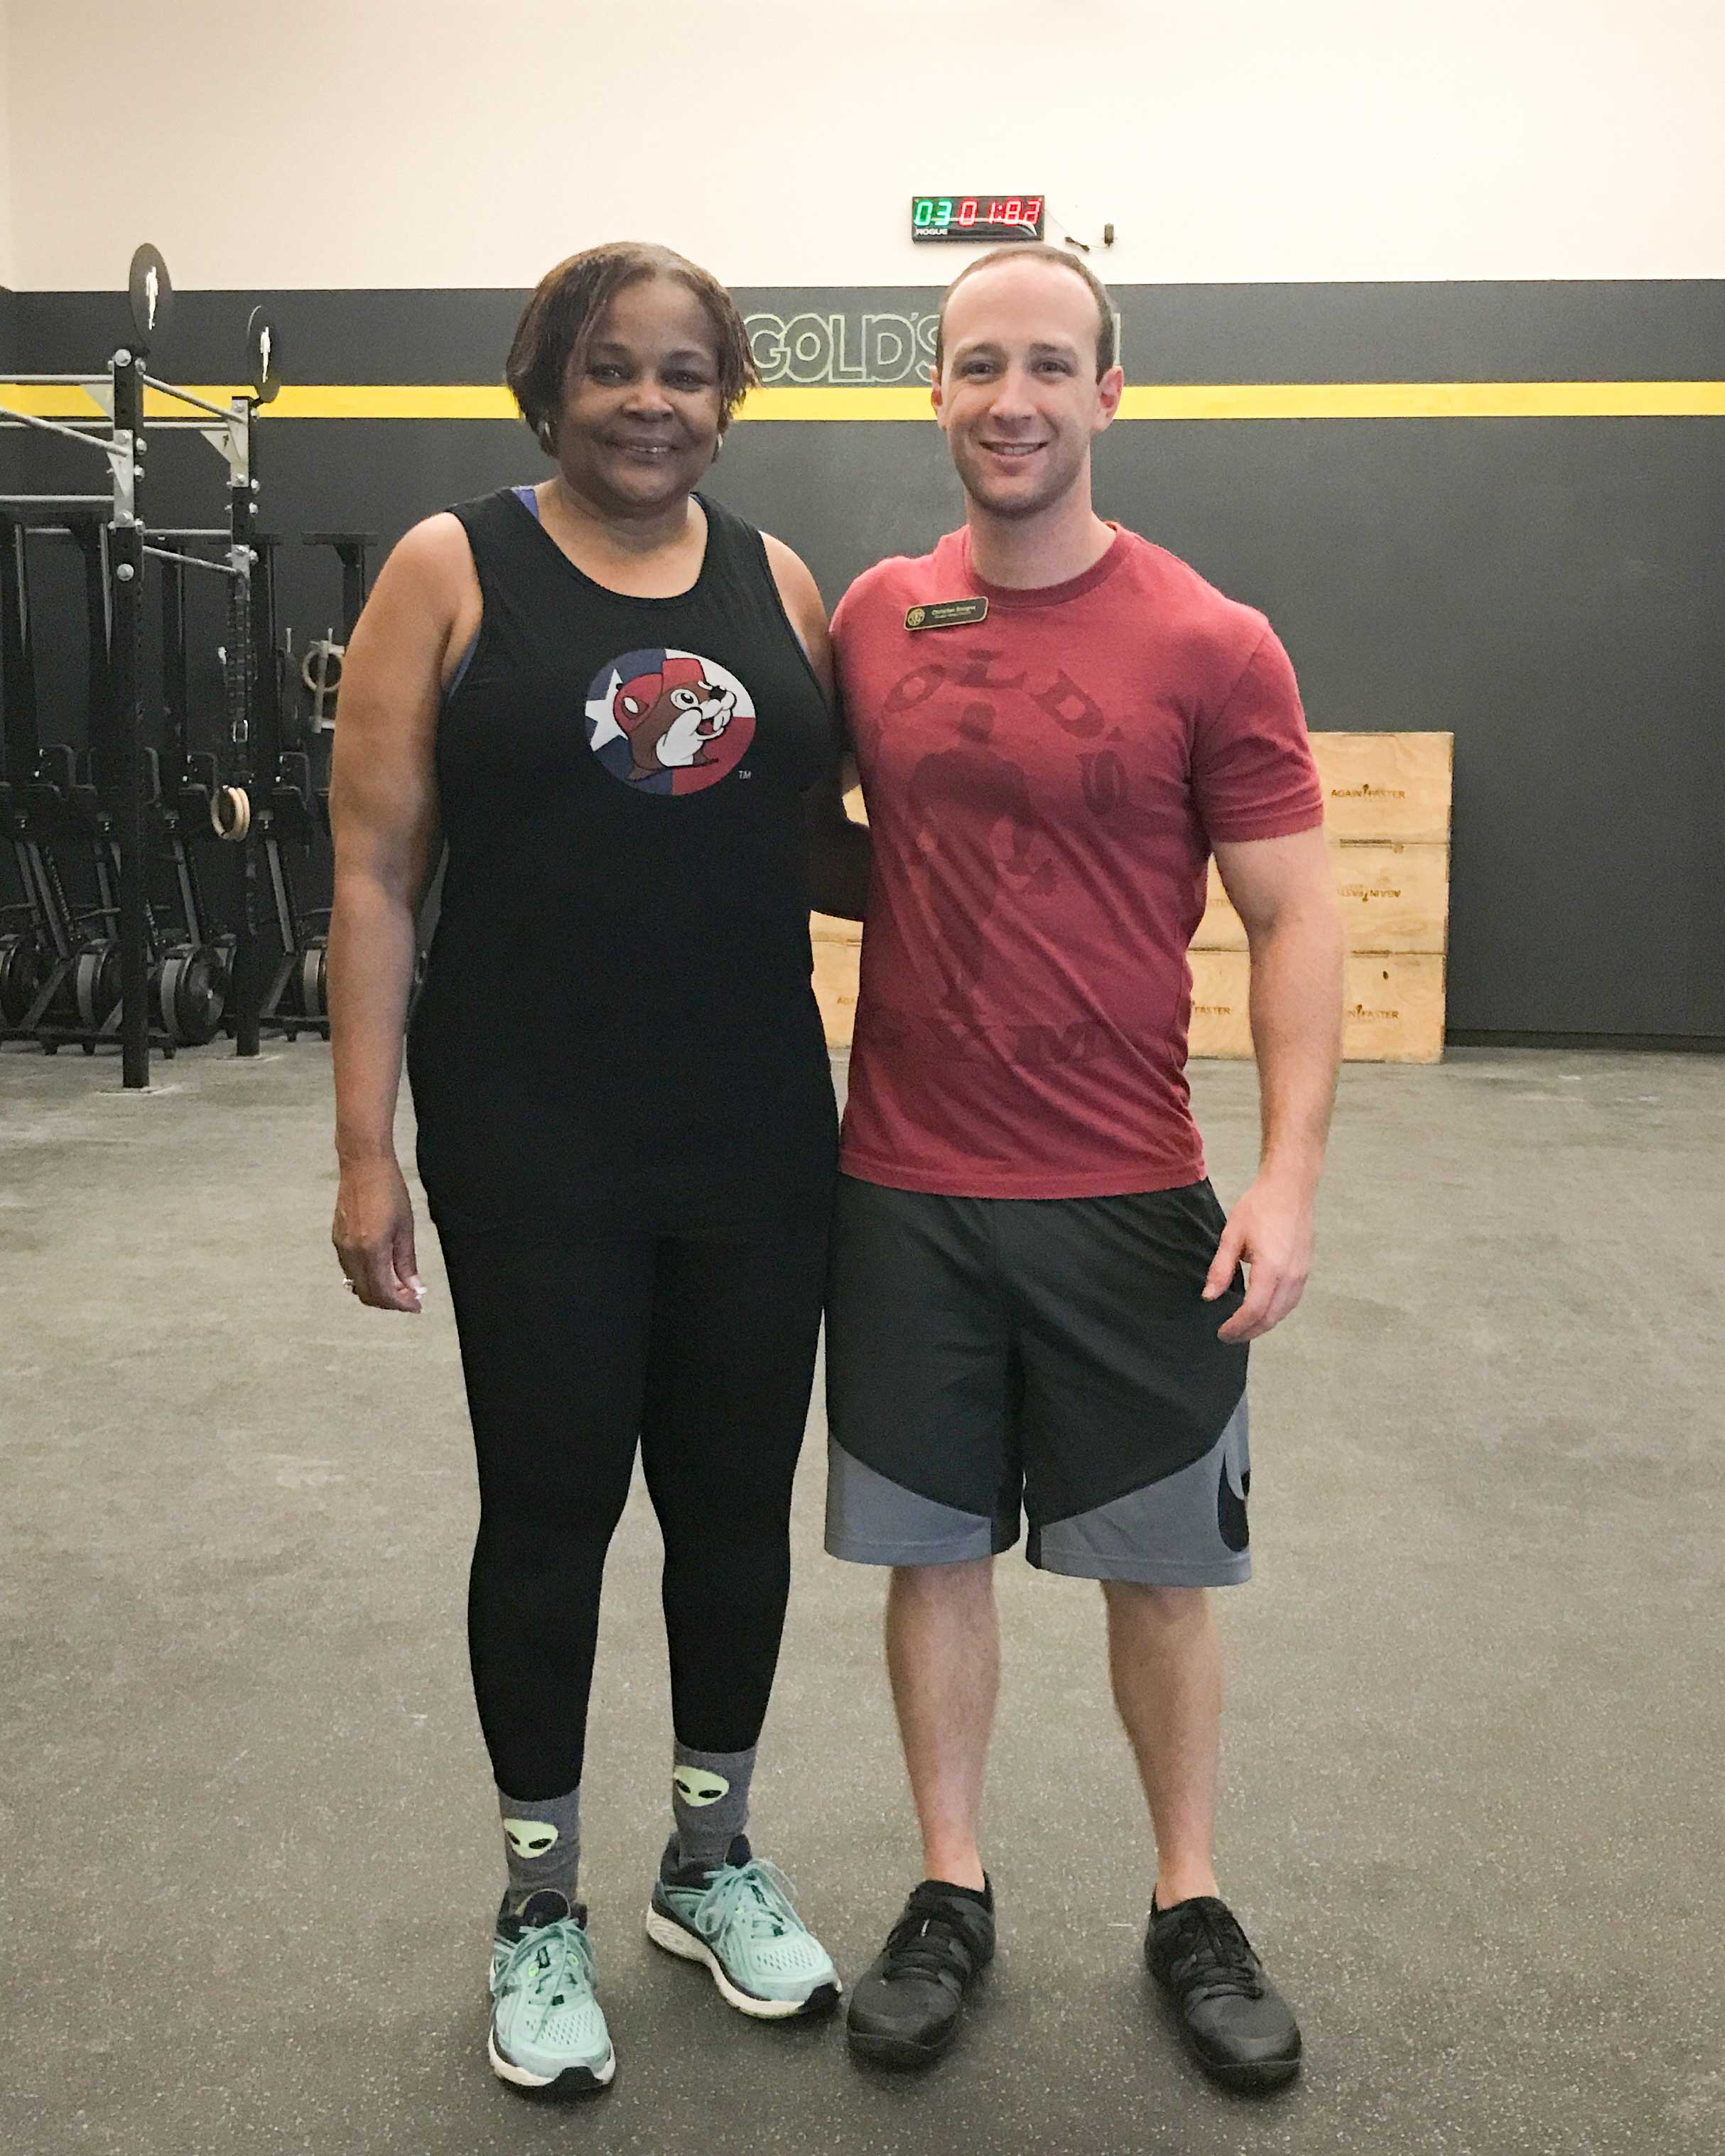 peggy and trainer